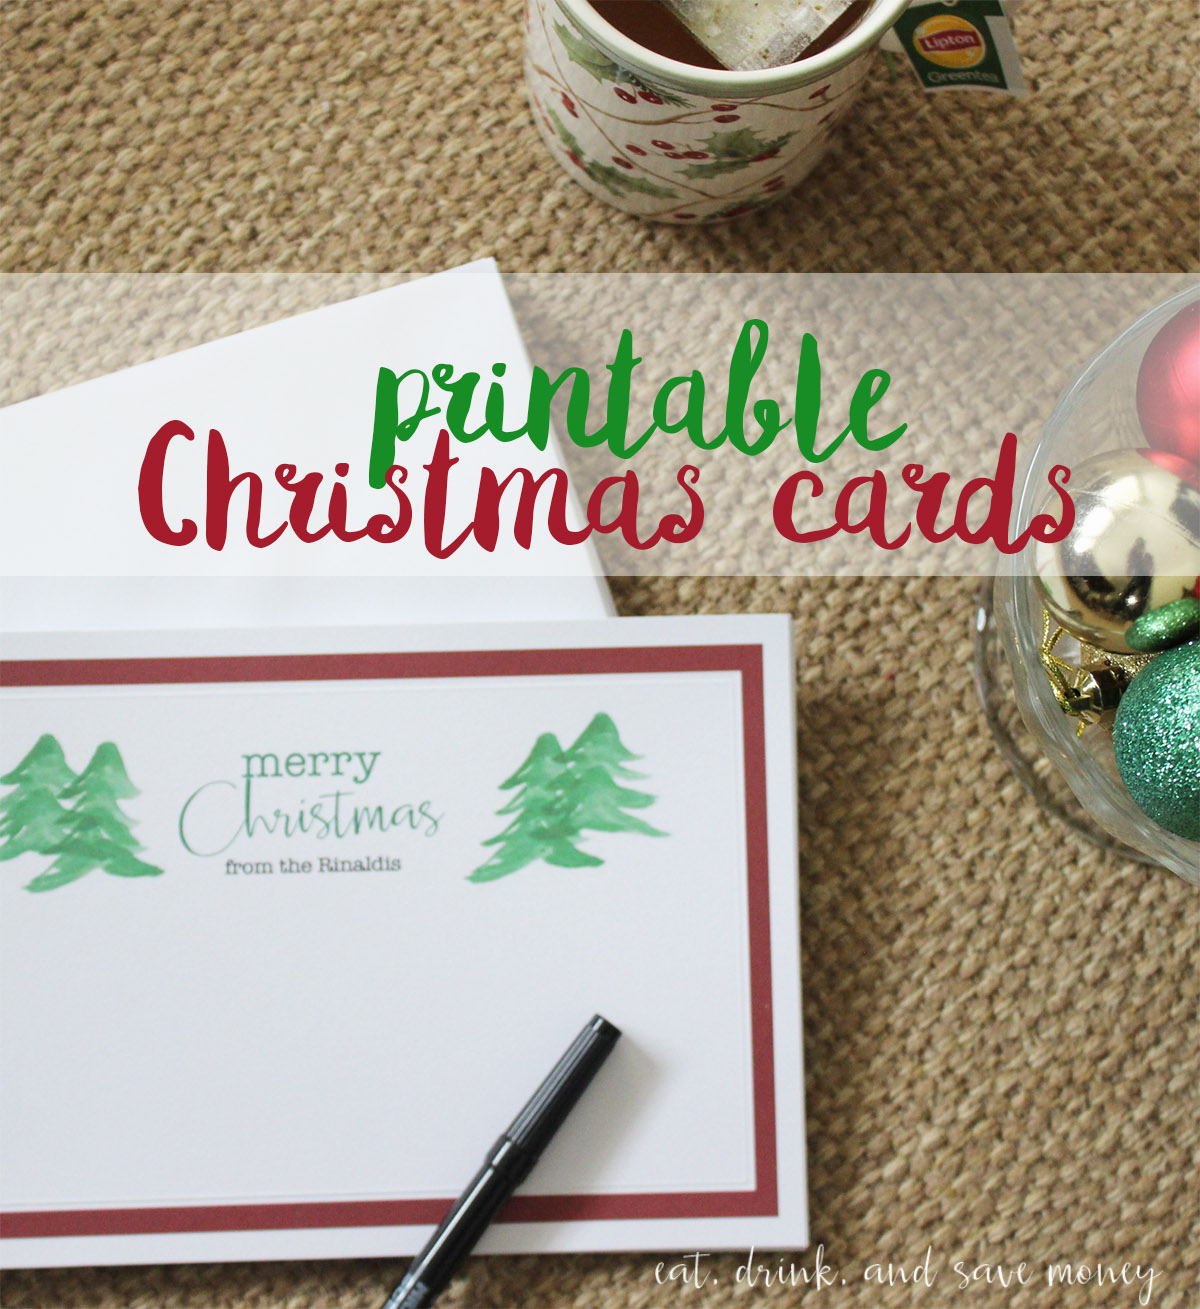 merry christmas printable pdf for christmas cards easy way to print out holiday cards - Cheap Christmas Cards Photo